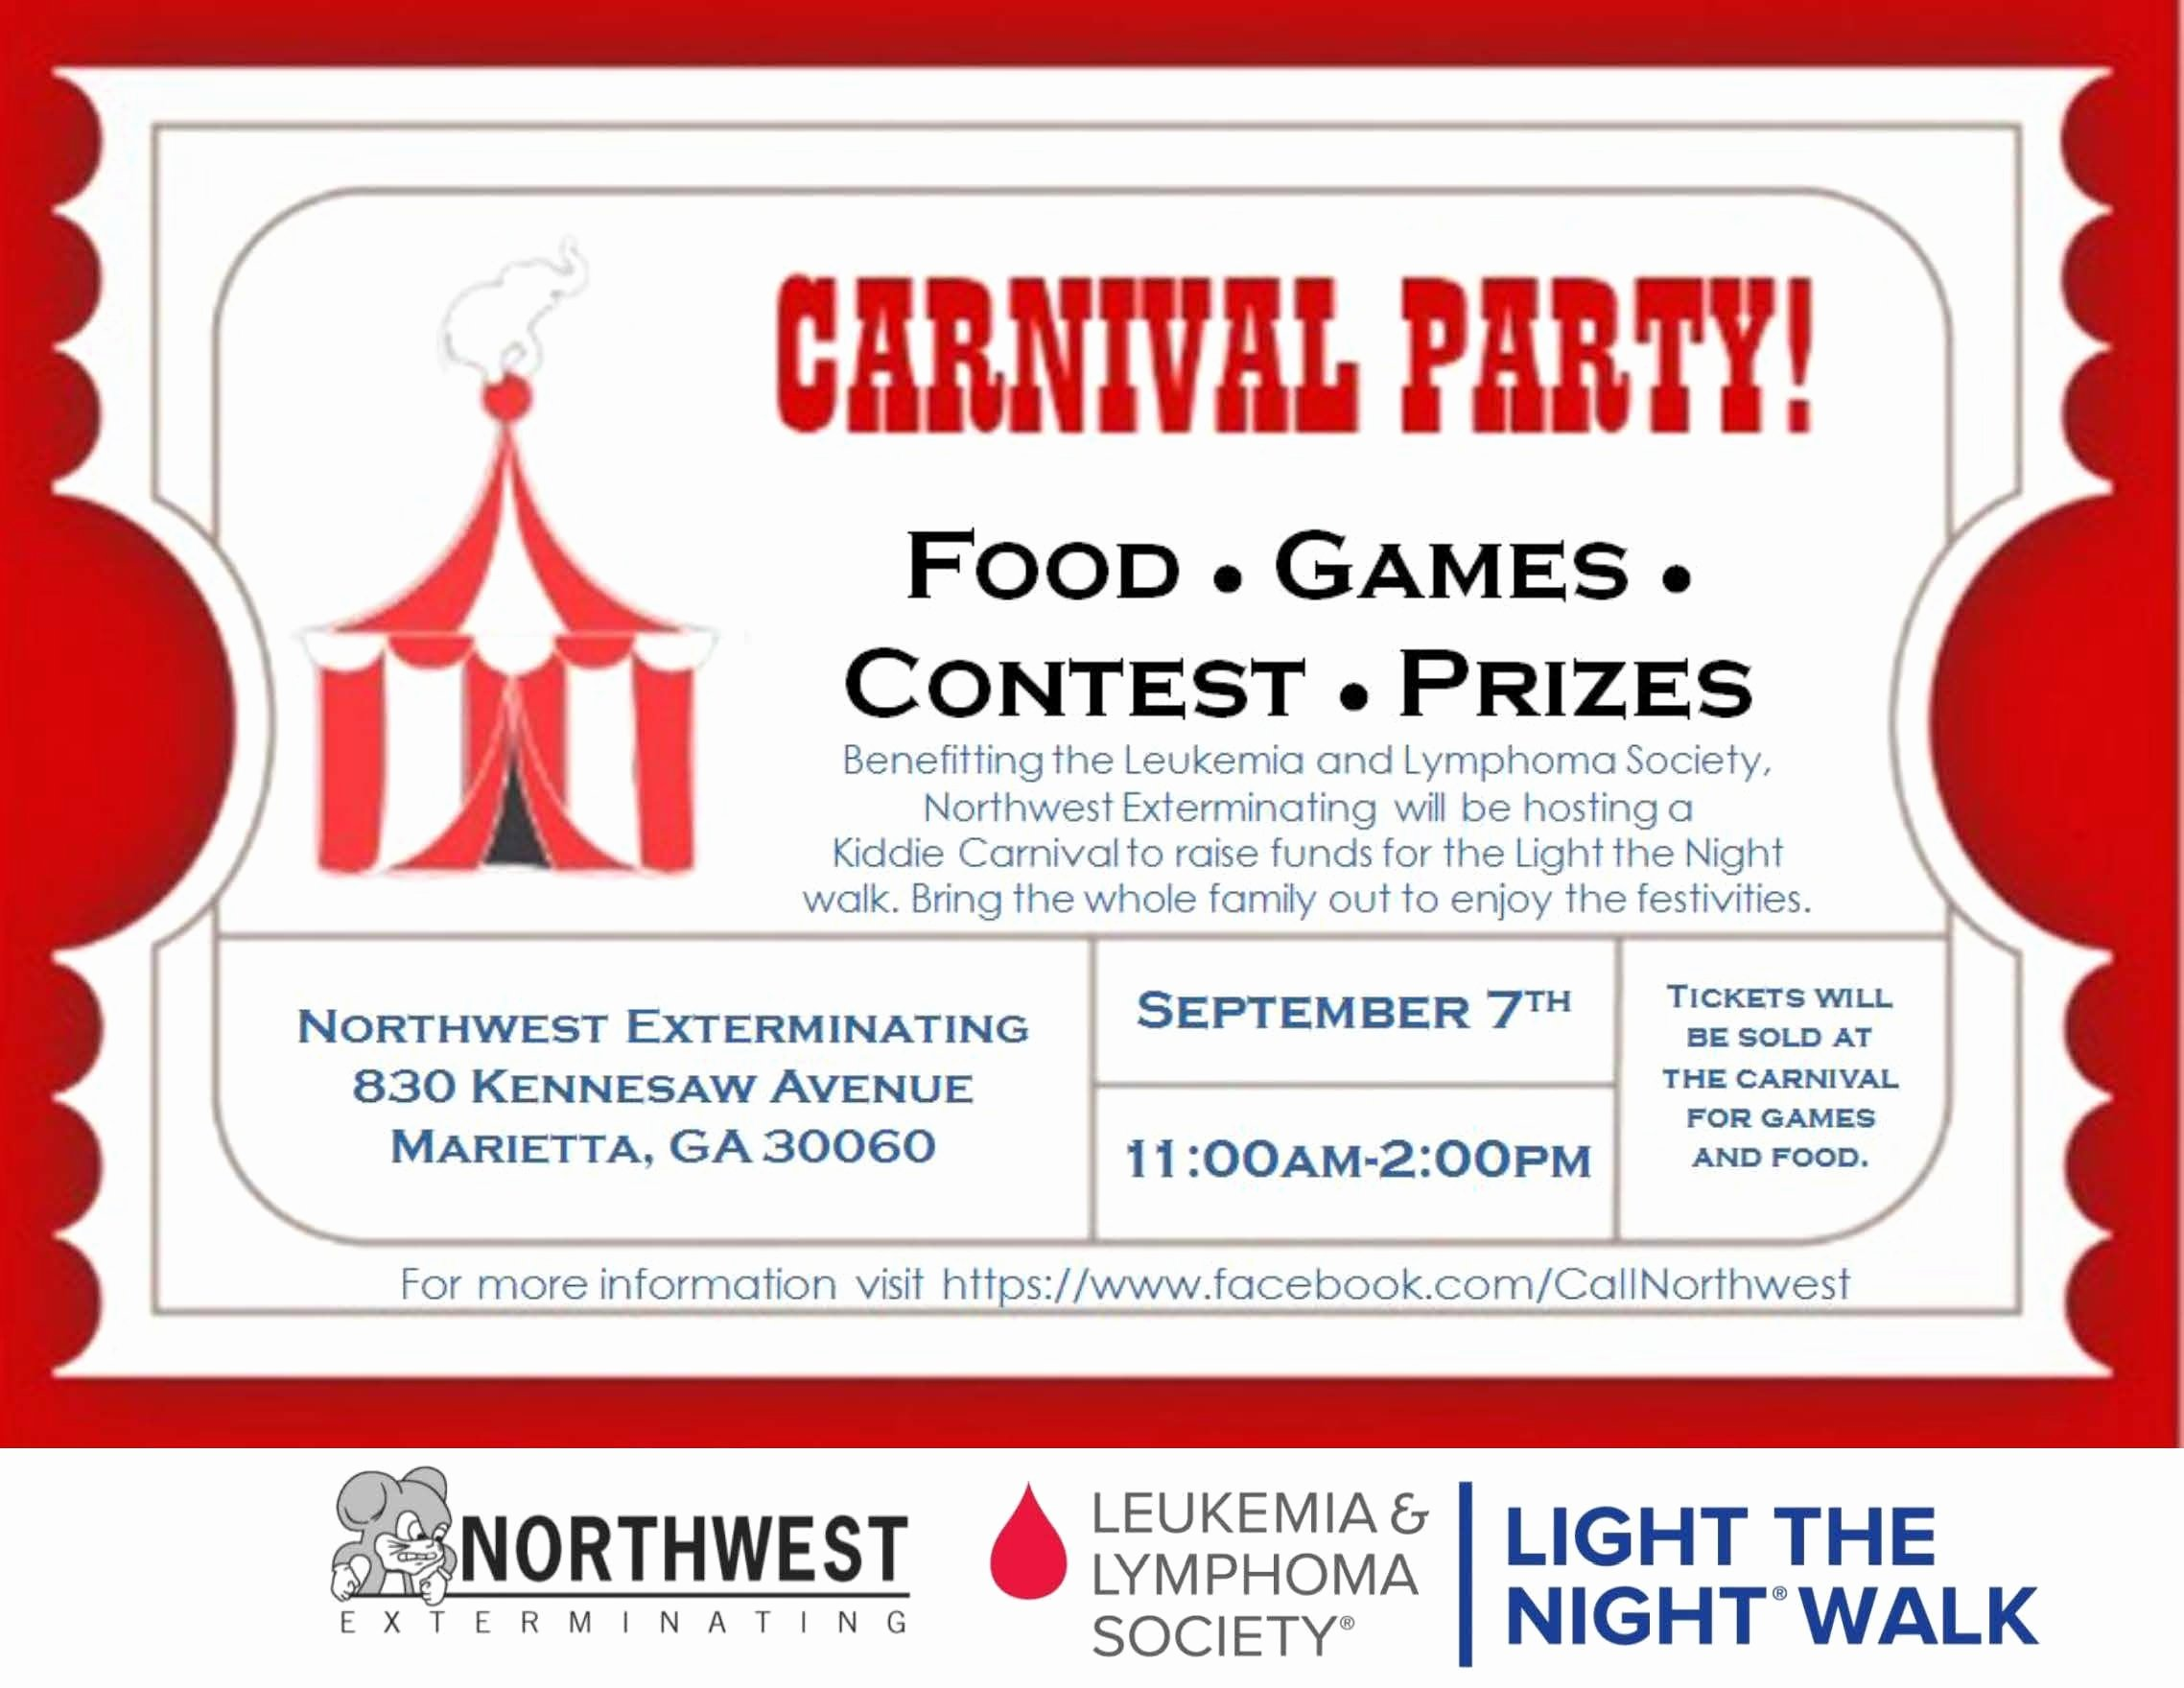 Raffle Flyer Template Free New Ltn Carnival Flyer 9 7 13 Viking Night